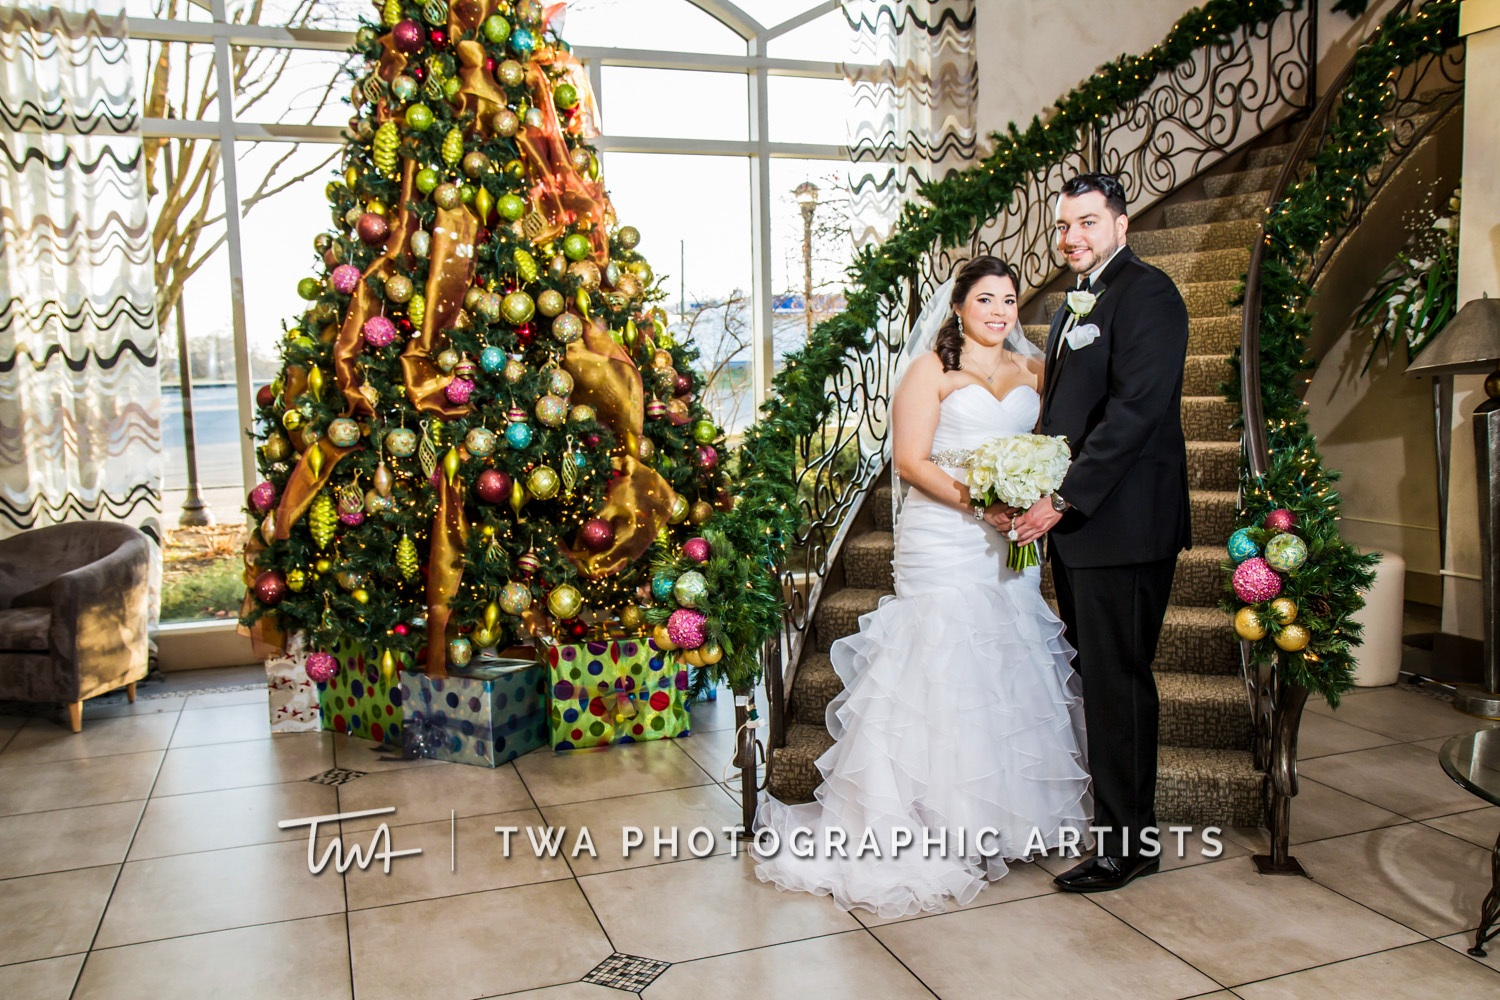 Chicago-Wedding-Photographer-TWA-Photographic-Artists-Belvedere-Banquets_Bentley_Garrido_MB_JA-0286